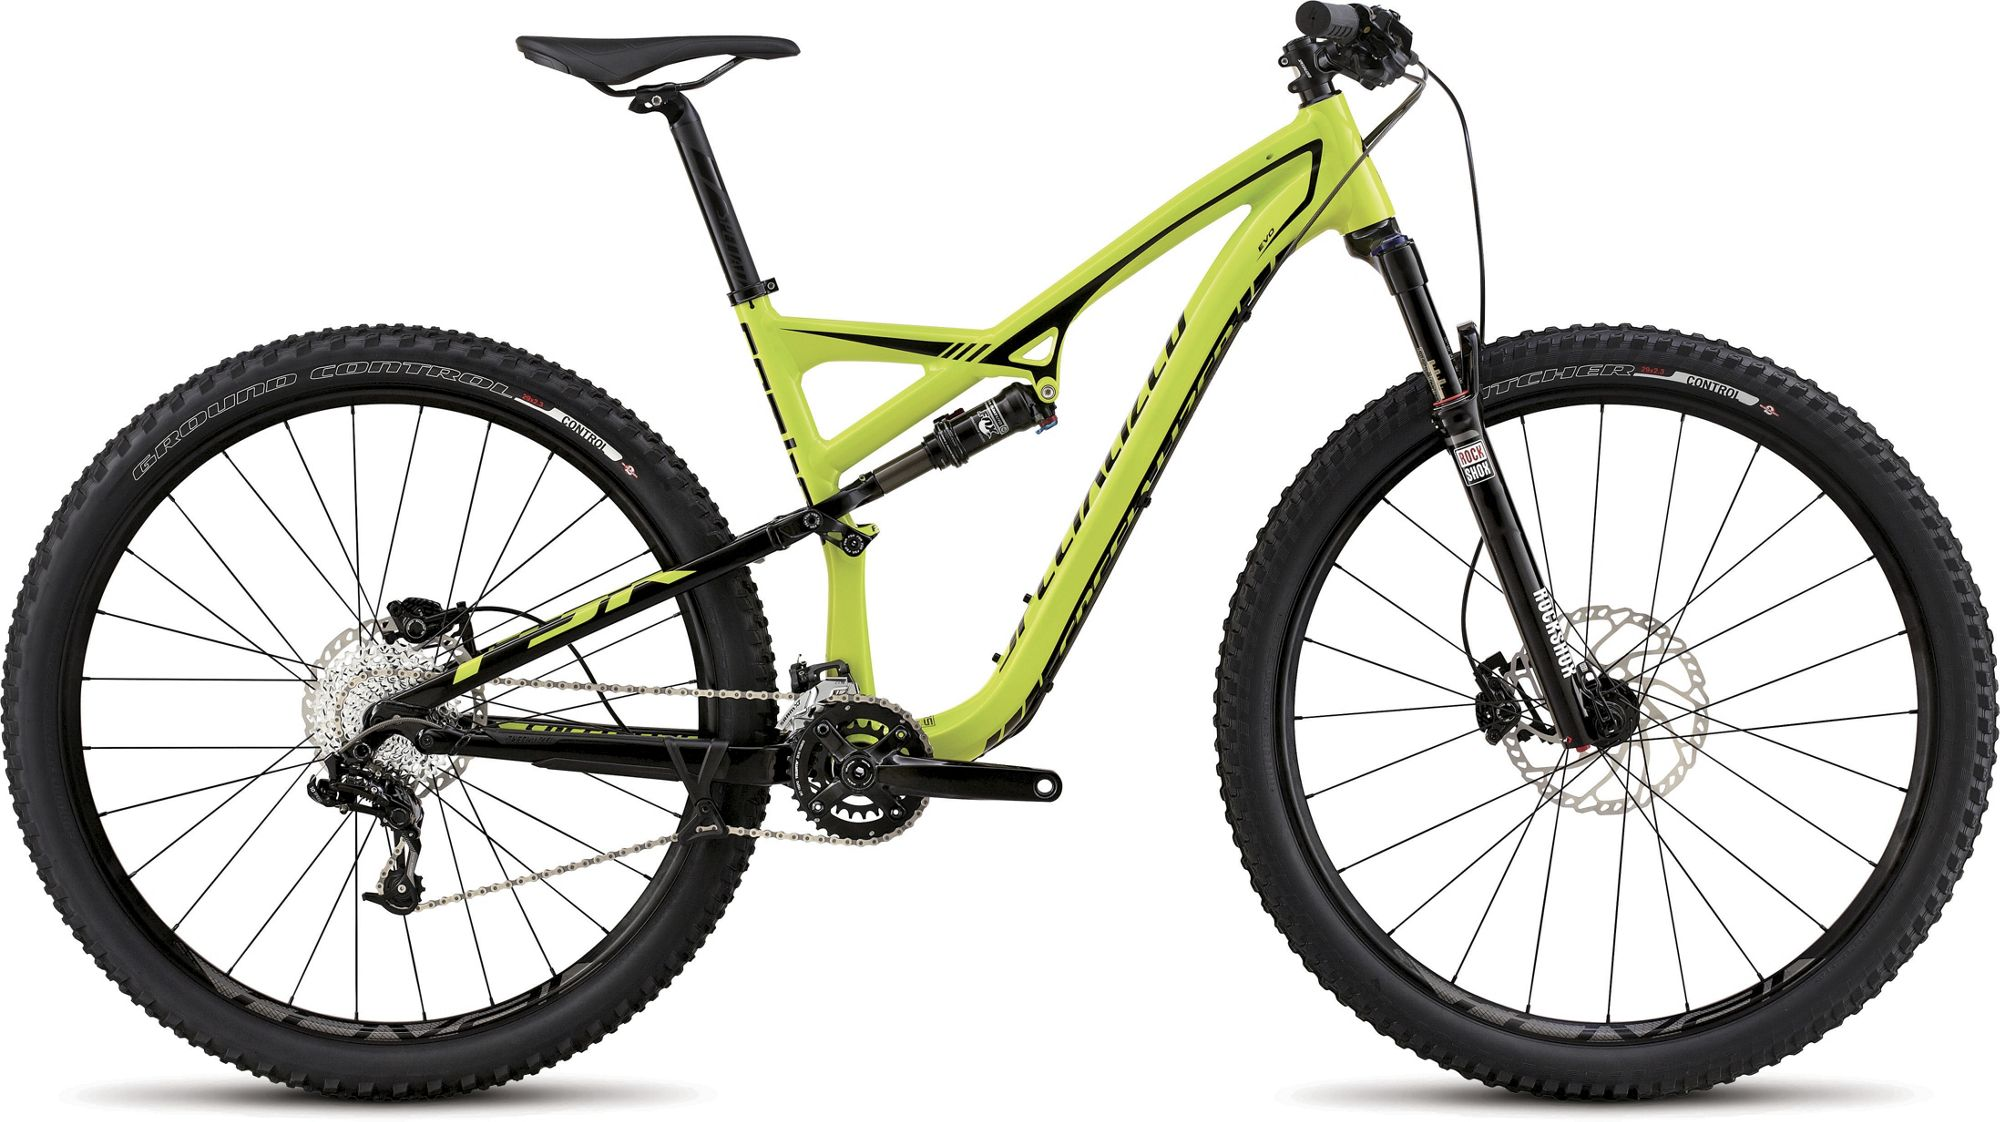 Specialized Camber Evo 2015 Review The Bike List